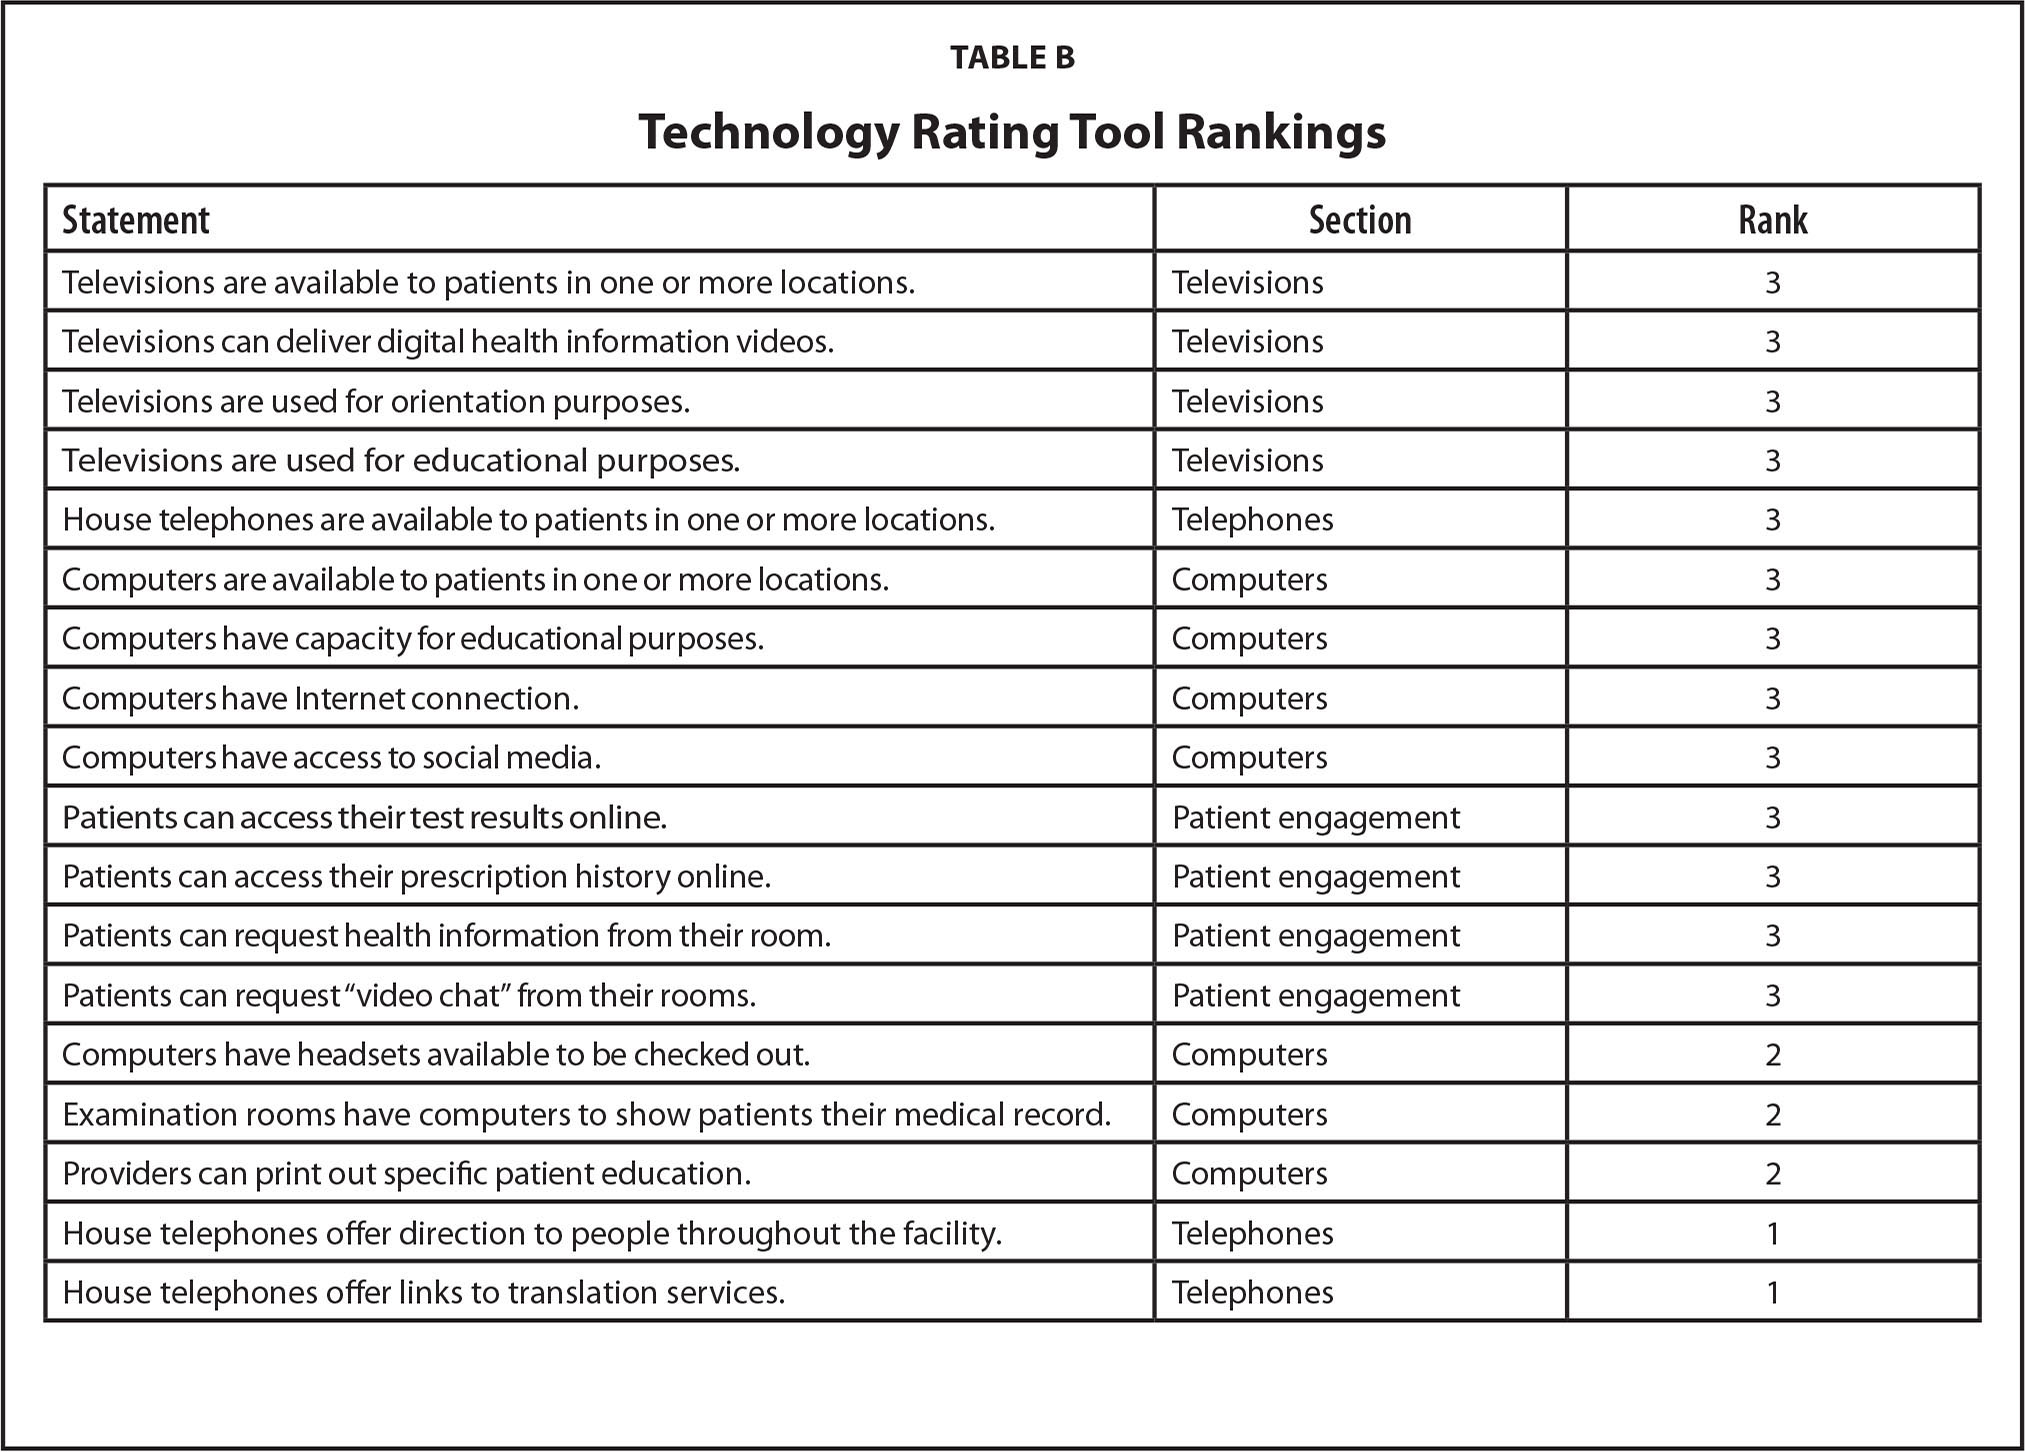 Technology Rating Tool Rankings